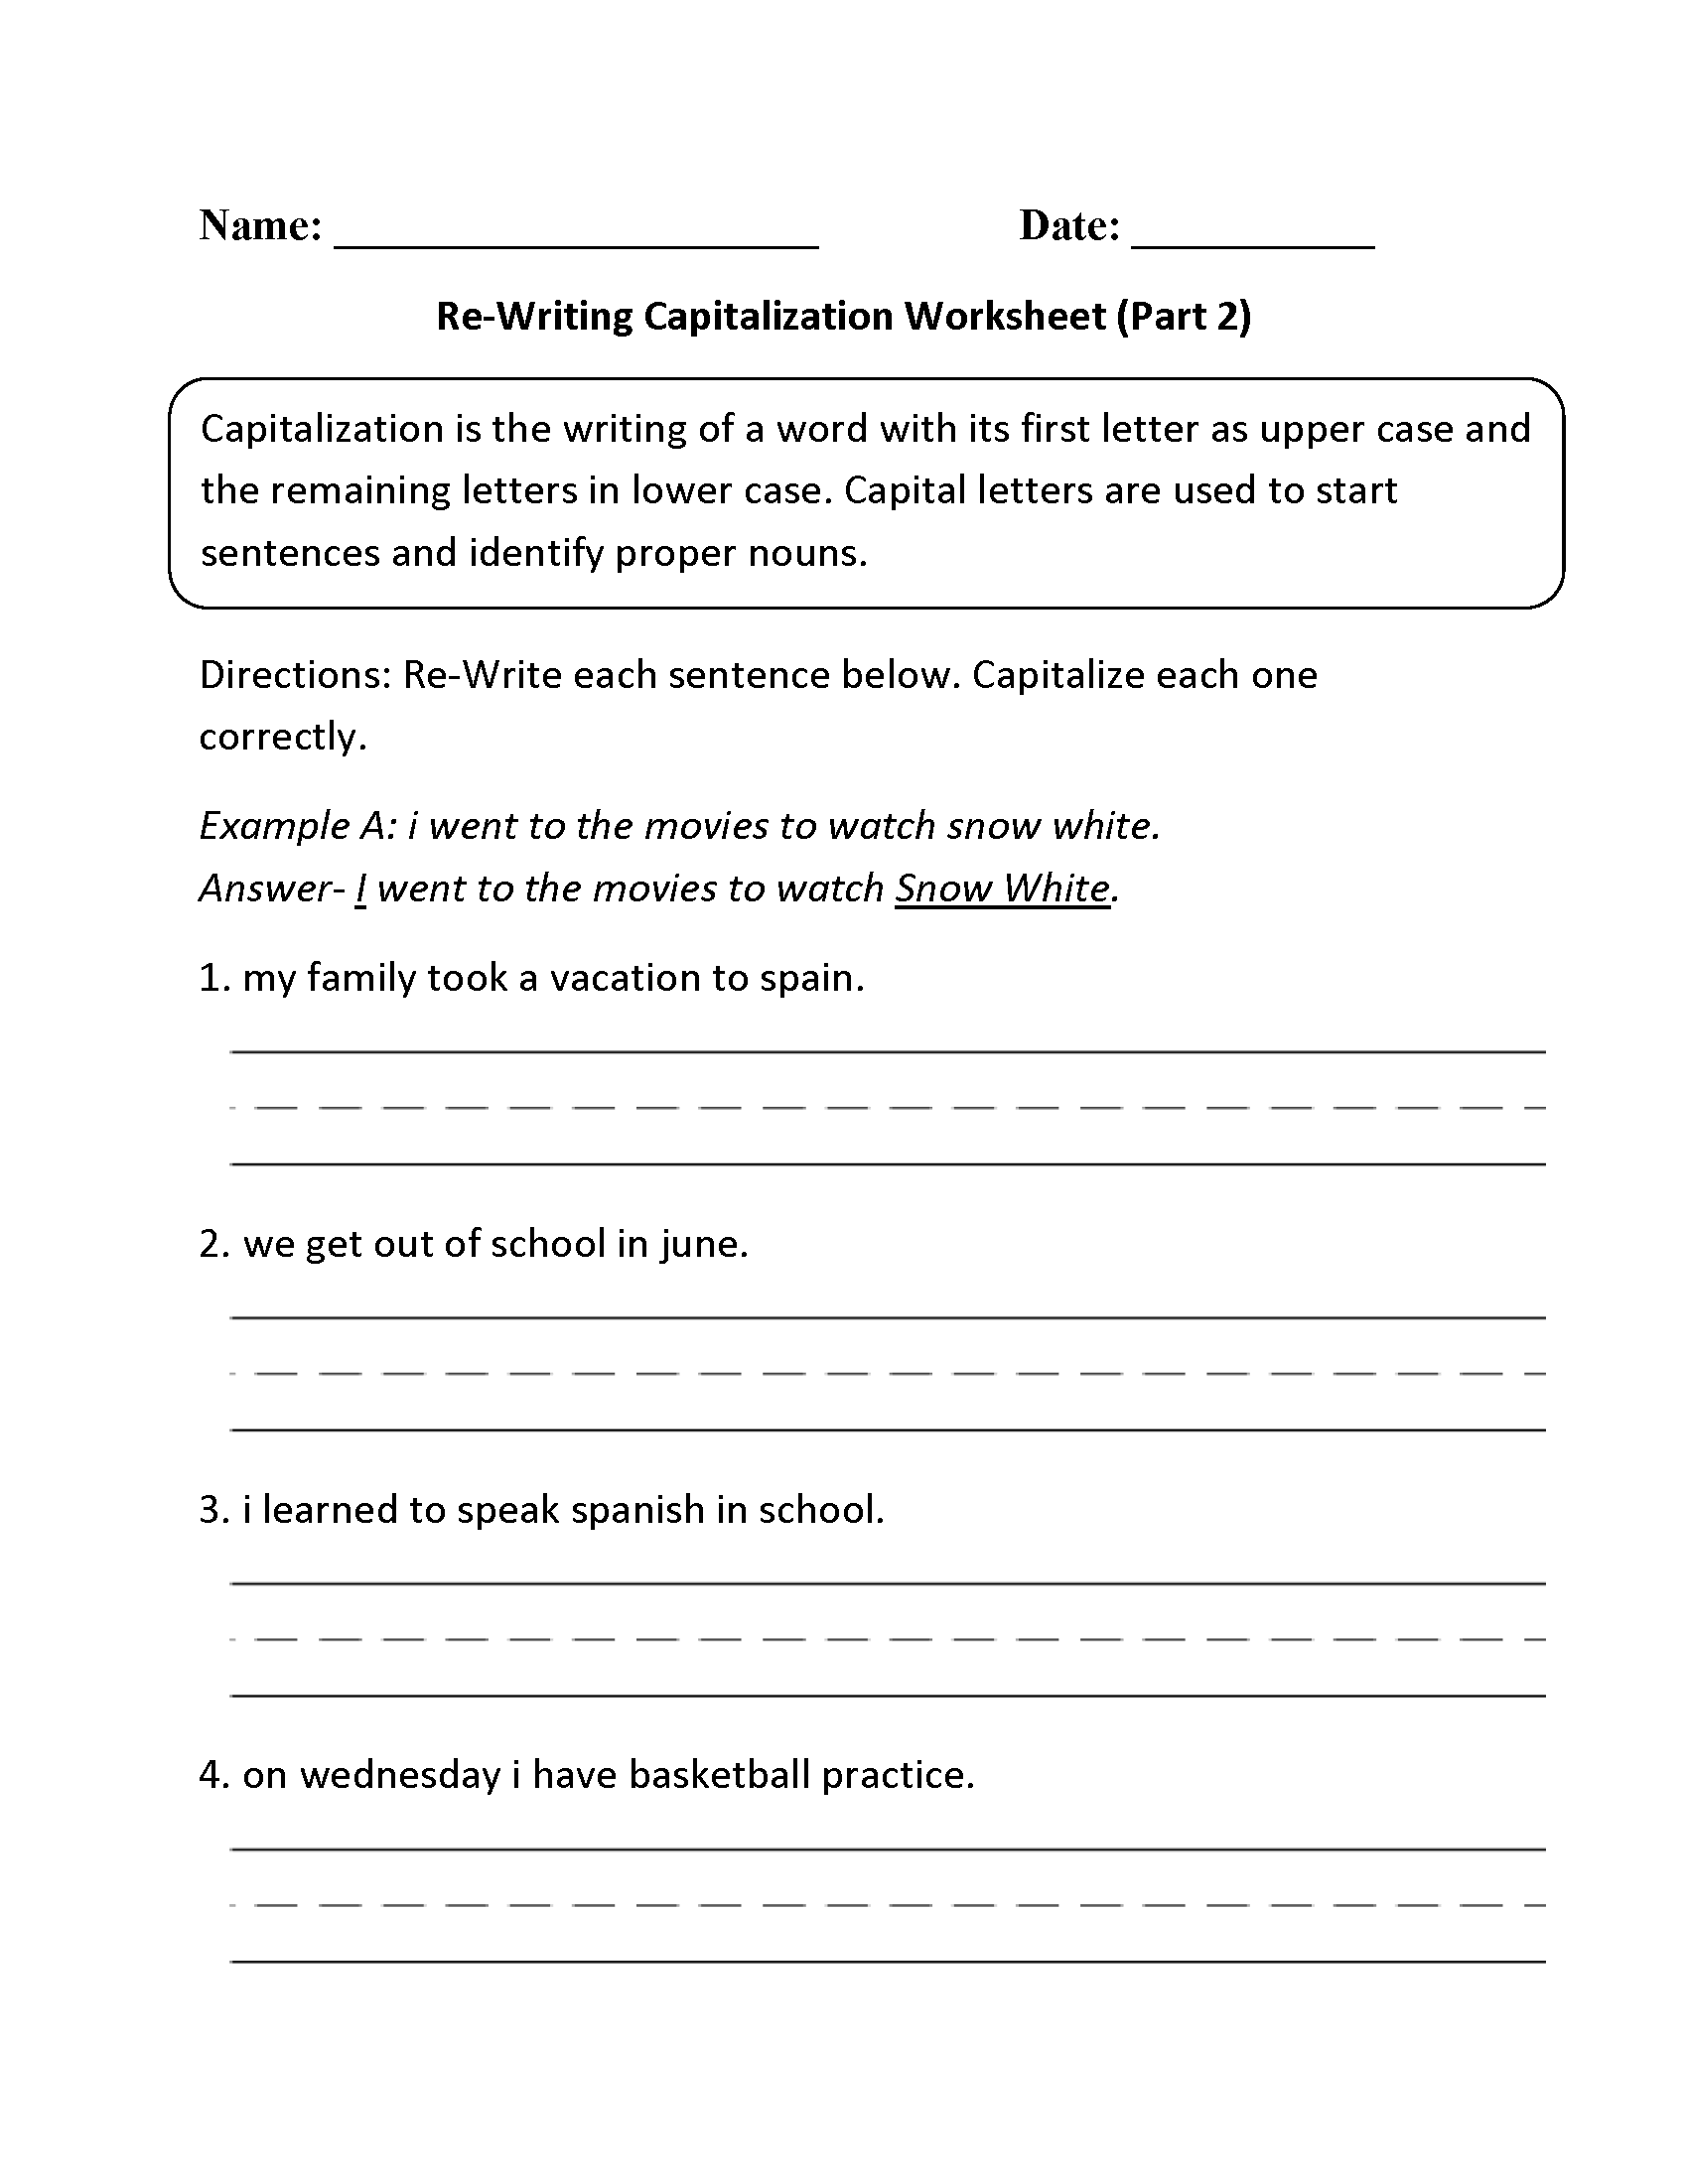 worksheet Beginner Spanish Worksheets englishlinx com capitalization worksheets worksheet part 2